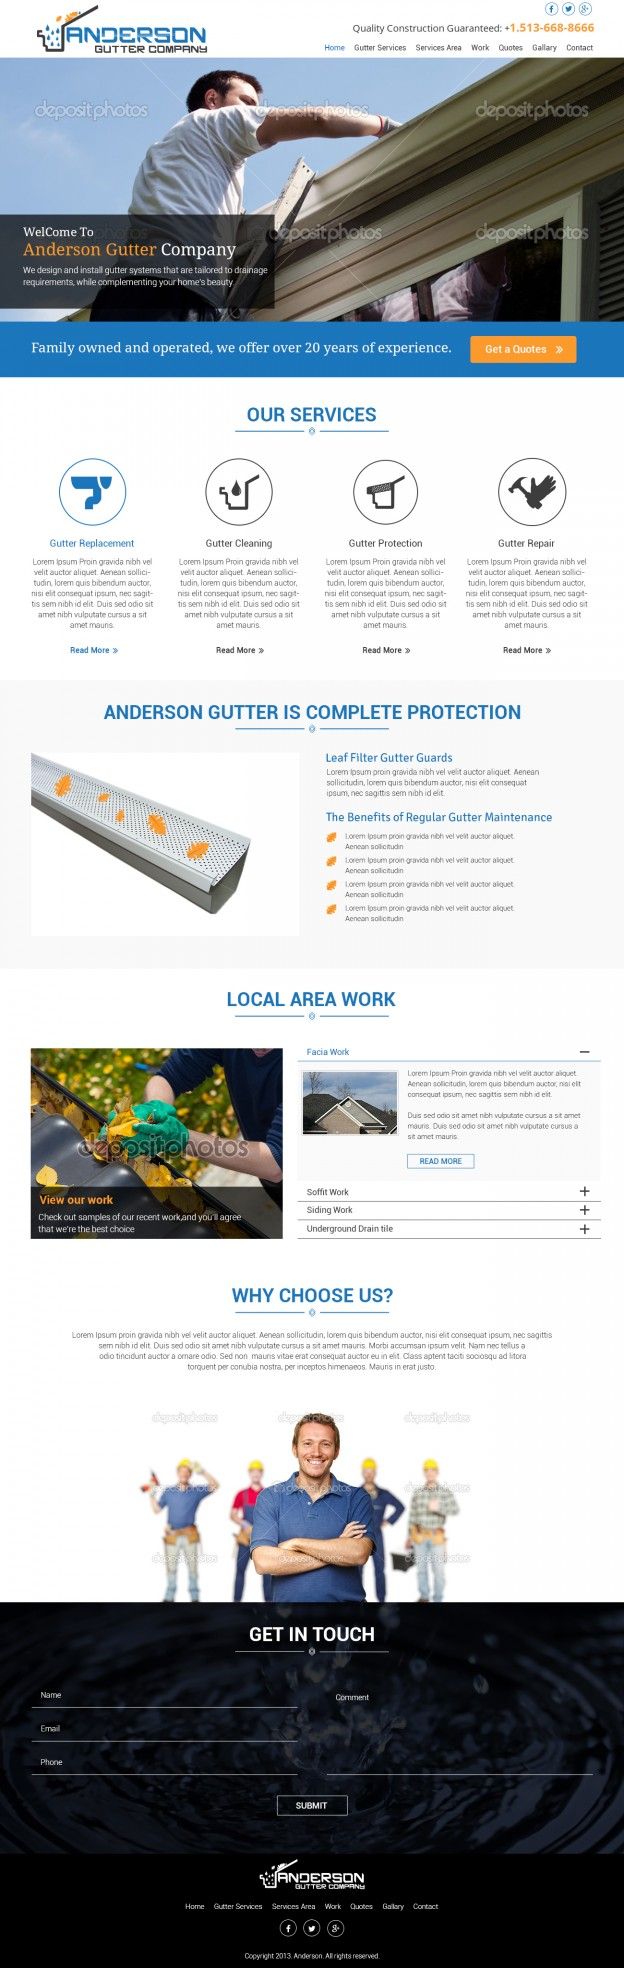 Anderson Gutter Company